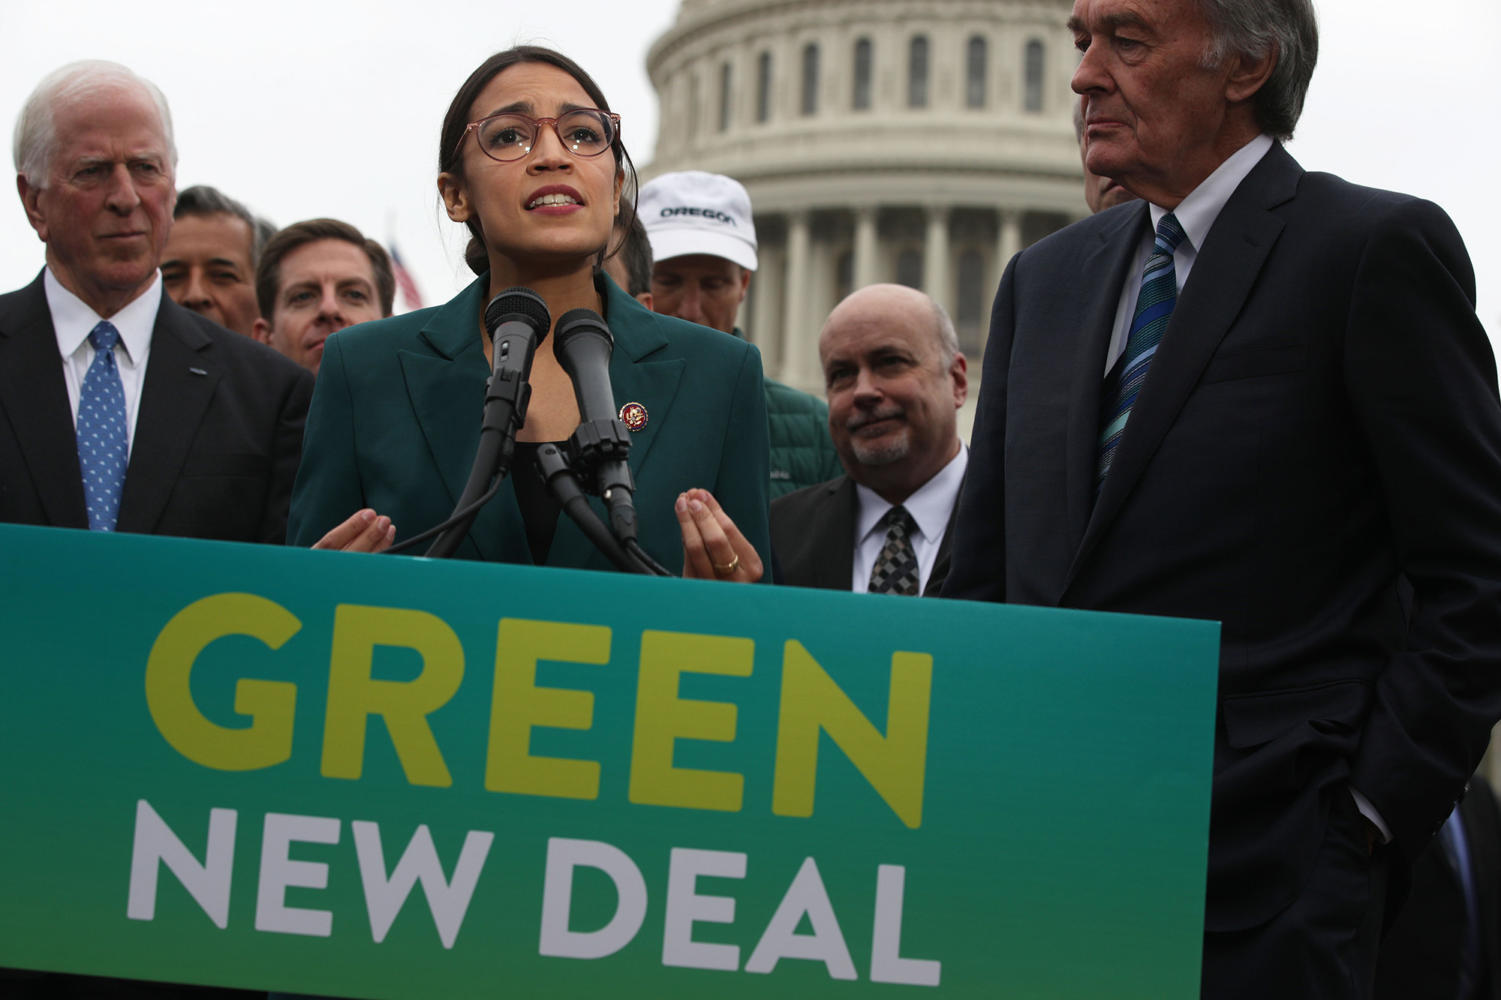 Rep. Alexandria Ocasio-Cortez (D-N.Y.) speaks as Sen. Ed Markey (D-Mass.), right, and other Congressional Democrats listen during a news conference in front of the U.S. Capitol on Thursday, Feb. 7, 2019, in Washington, DC.